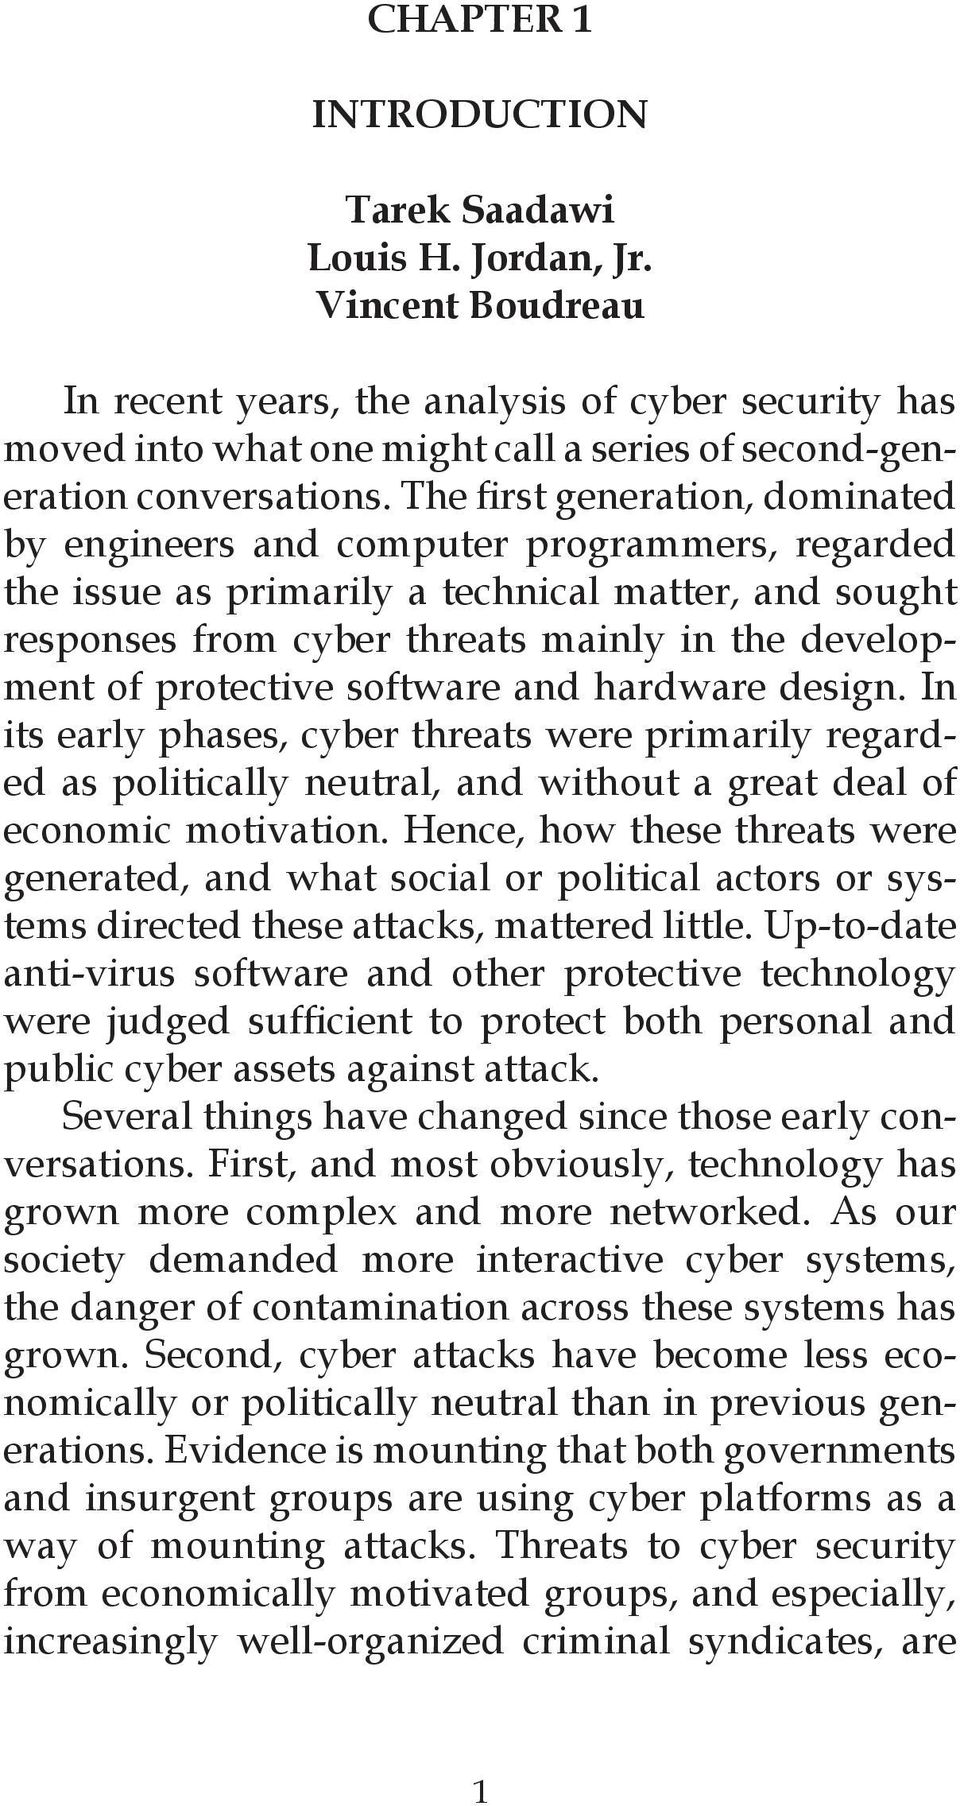 The first generation, dominated by engineers and computer programmers, regarded the issue as primarily a technical matter, and sought responses from cyber threats mainly in the development of